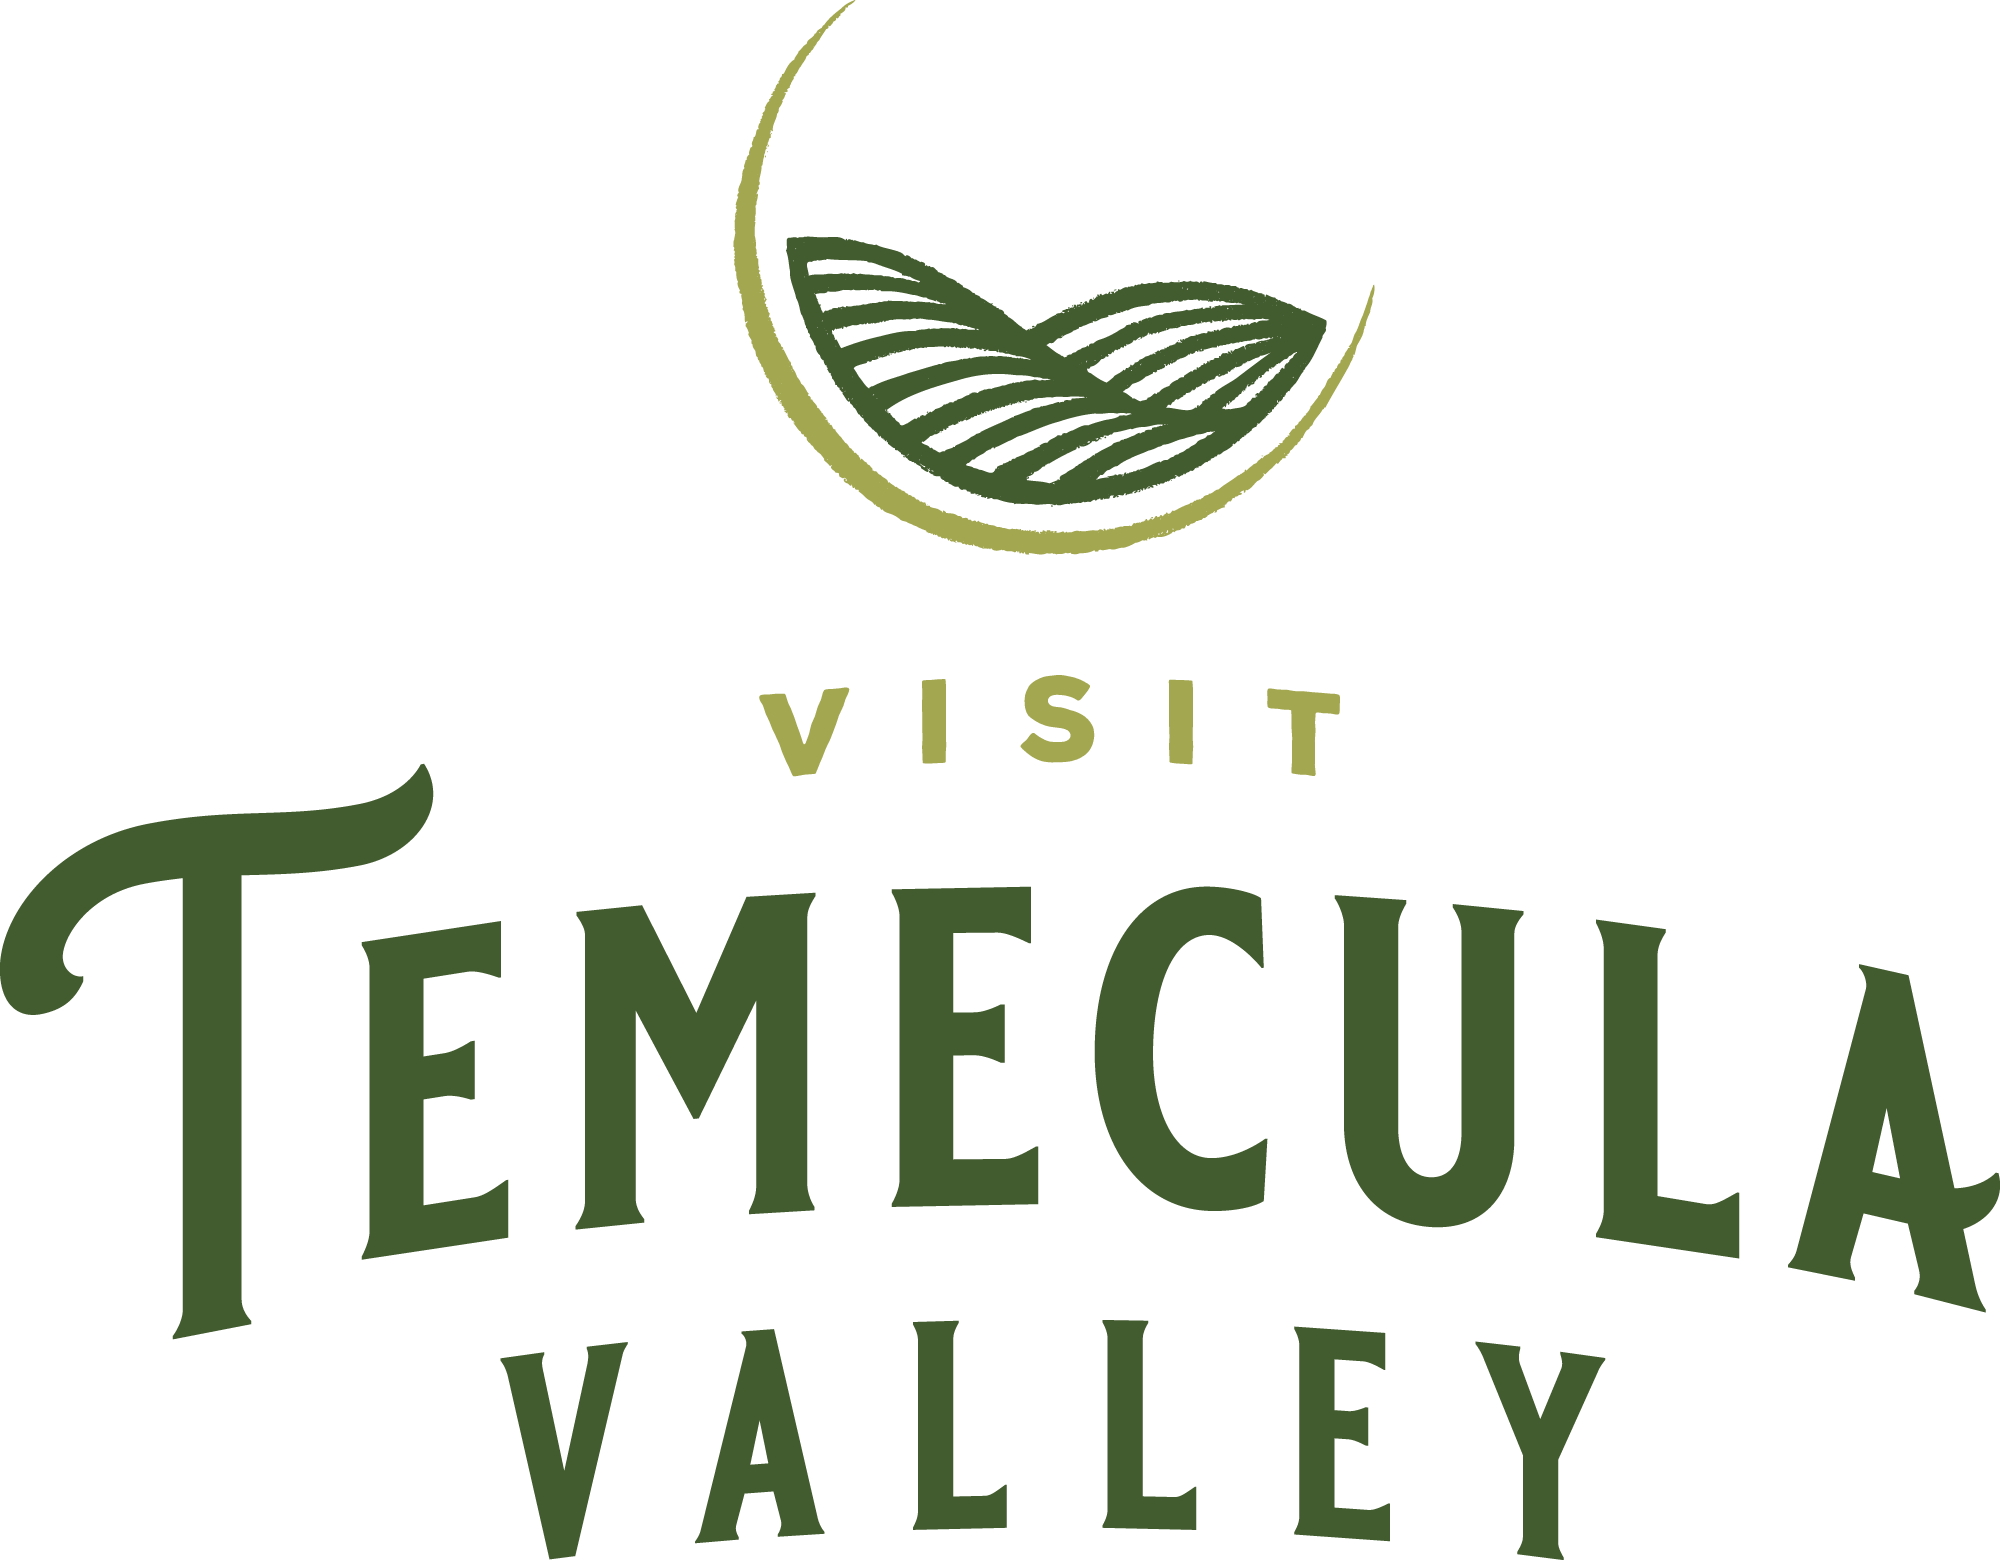 Temecula Winery Map and Directions - Temecula CA on